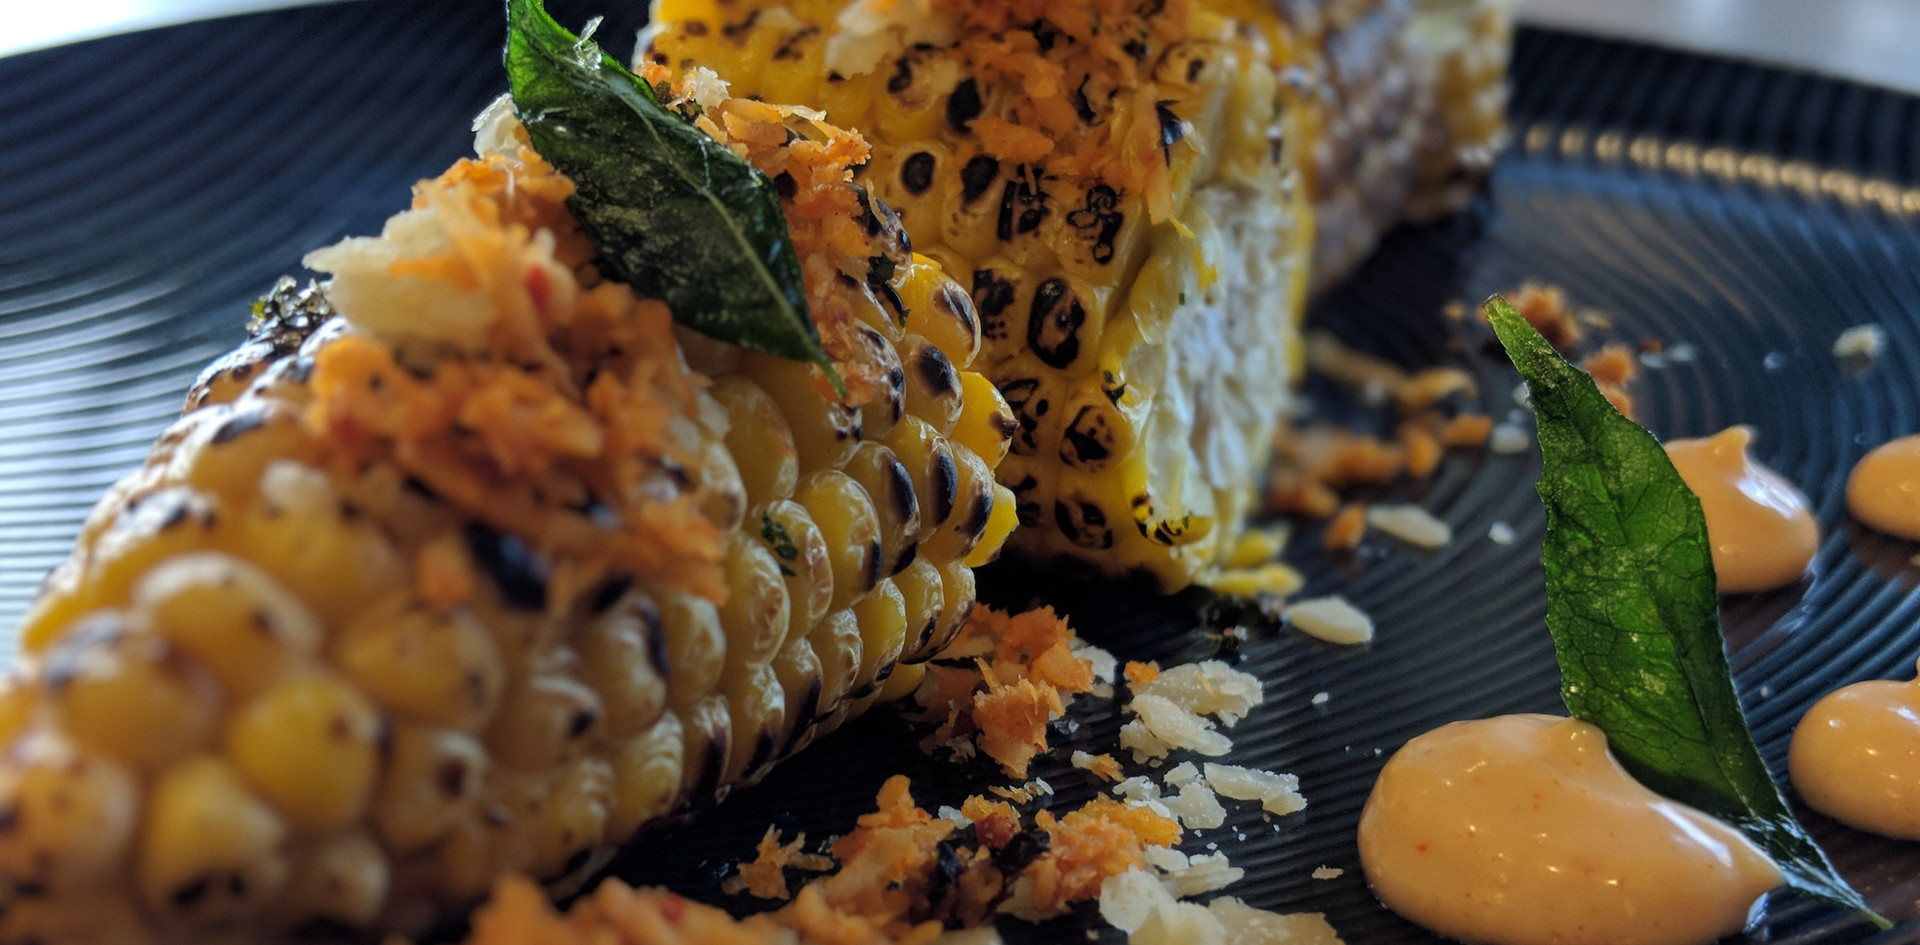 Grilled Corn cob with Sri Lankan Spices